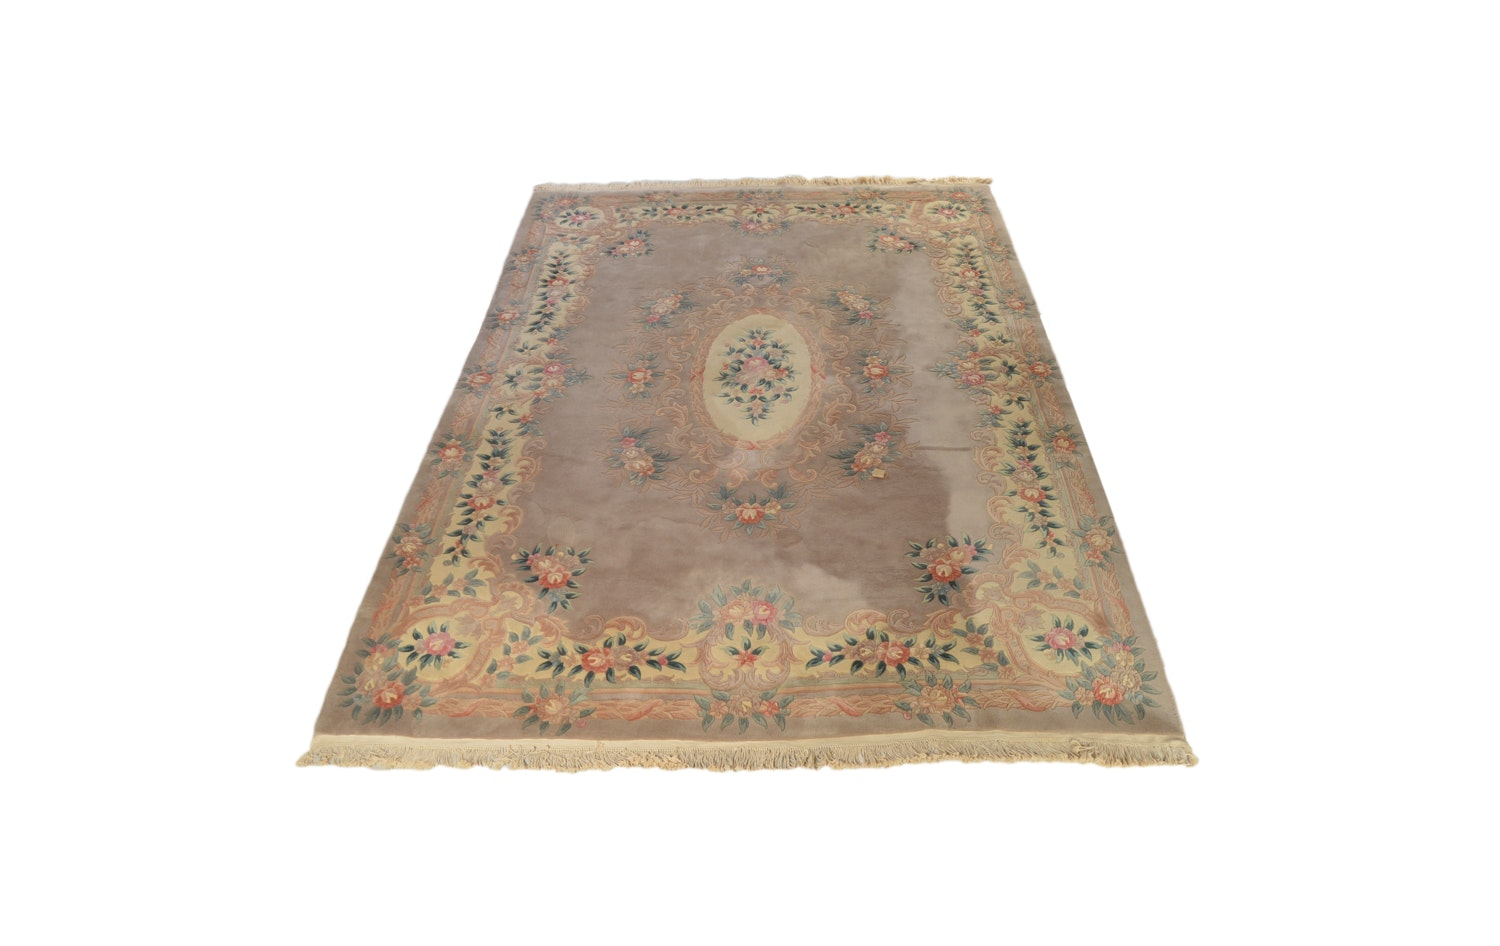 Hand-Knotted Chinese Floral Carved Wool Room Sized Rug